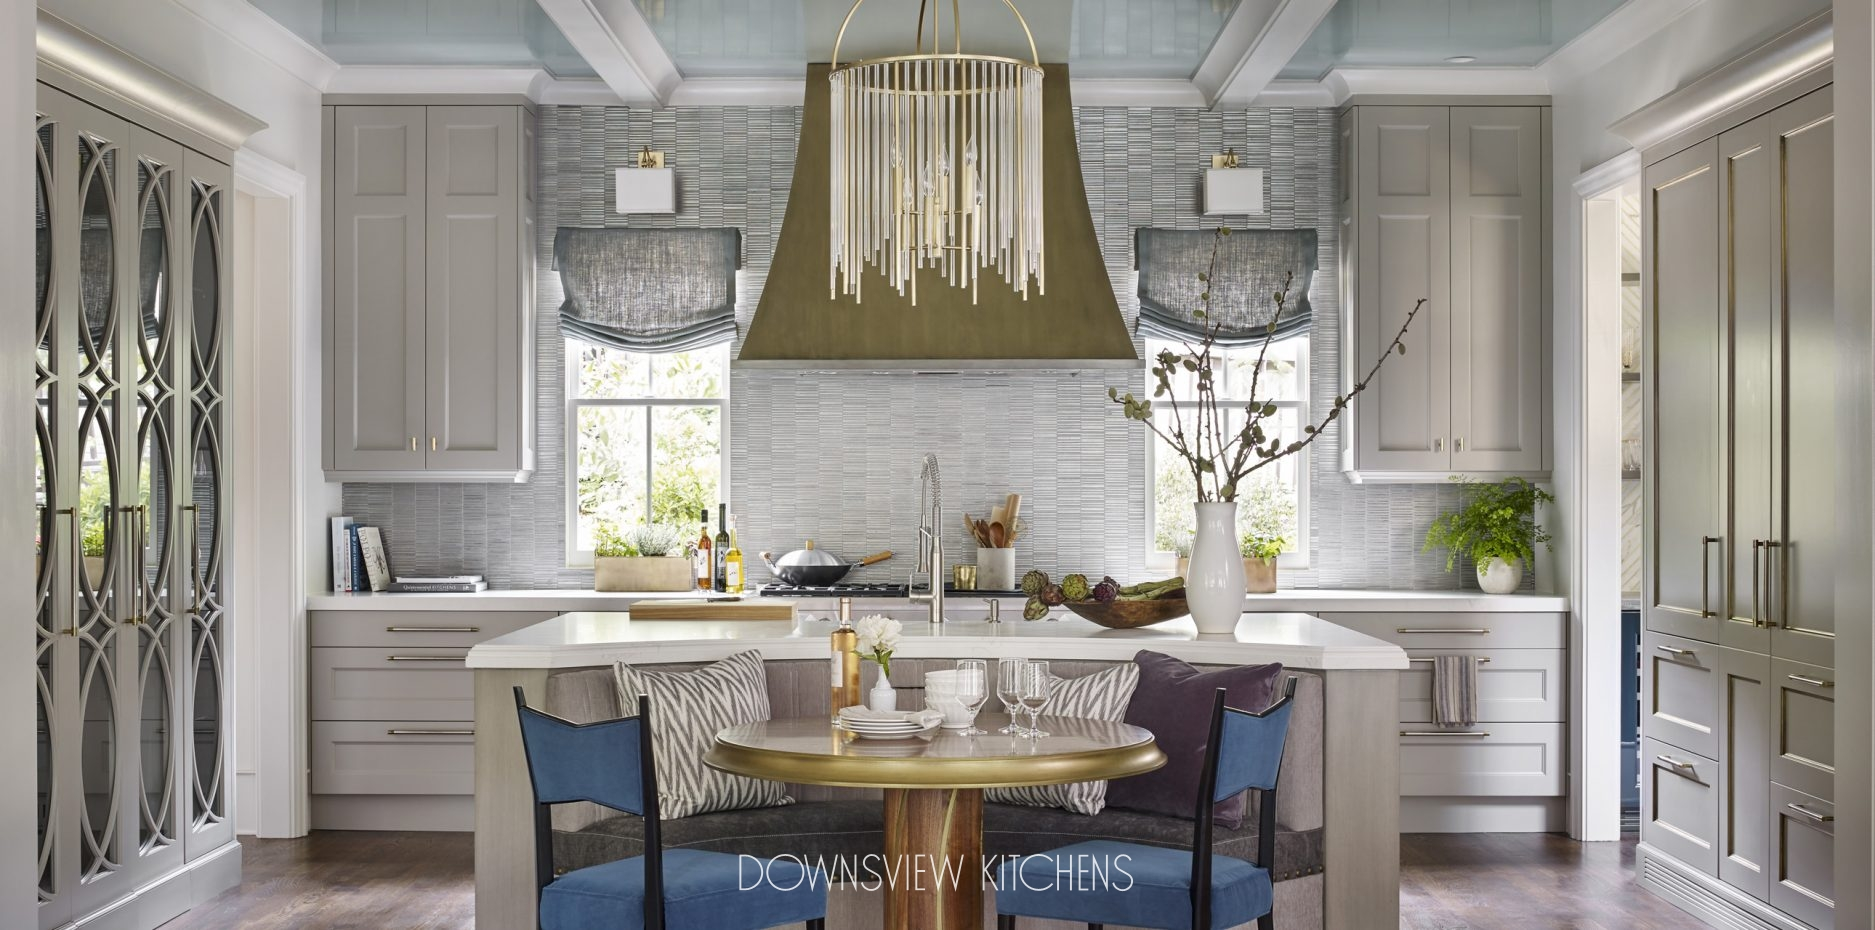 custom kitchens hickory kitchen cabinets wholesale artful mix downsview and fine cabinetry manufacturers of